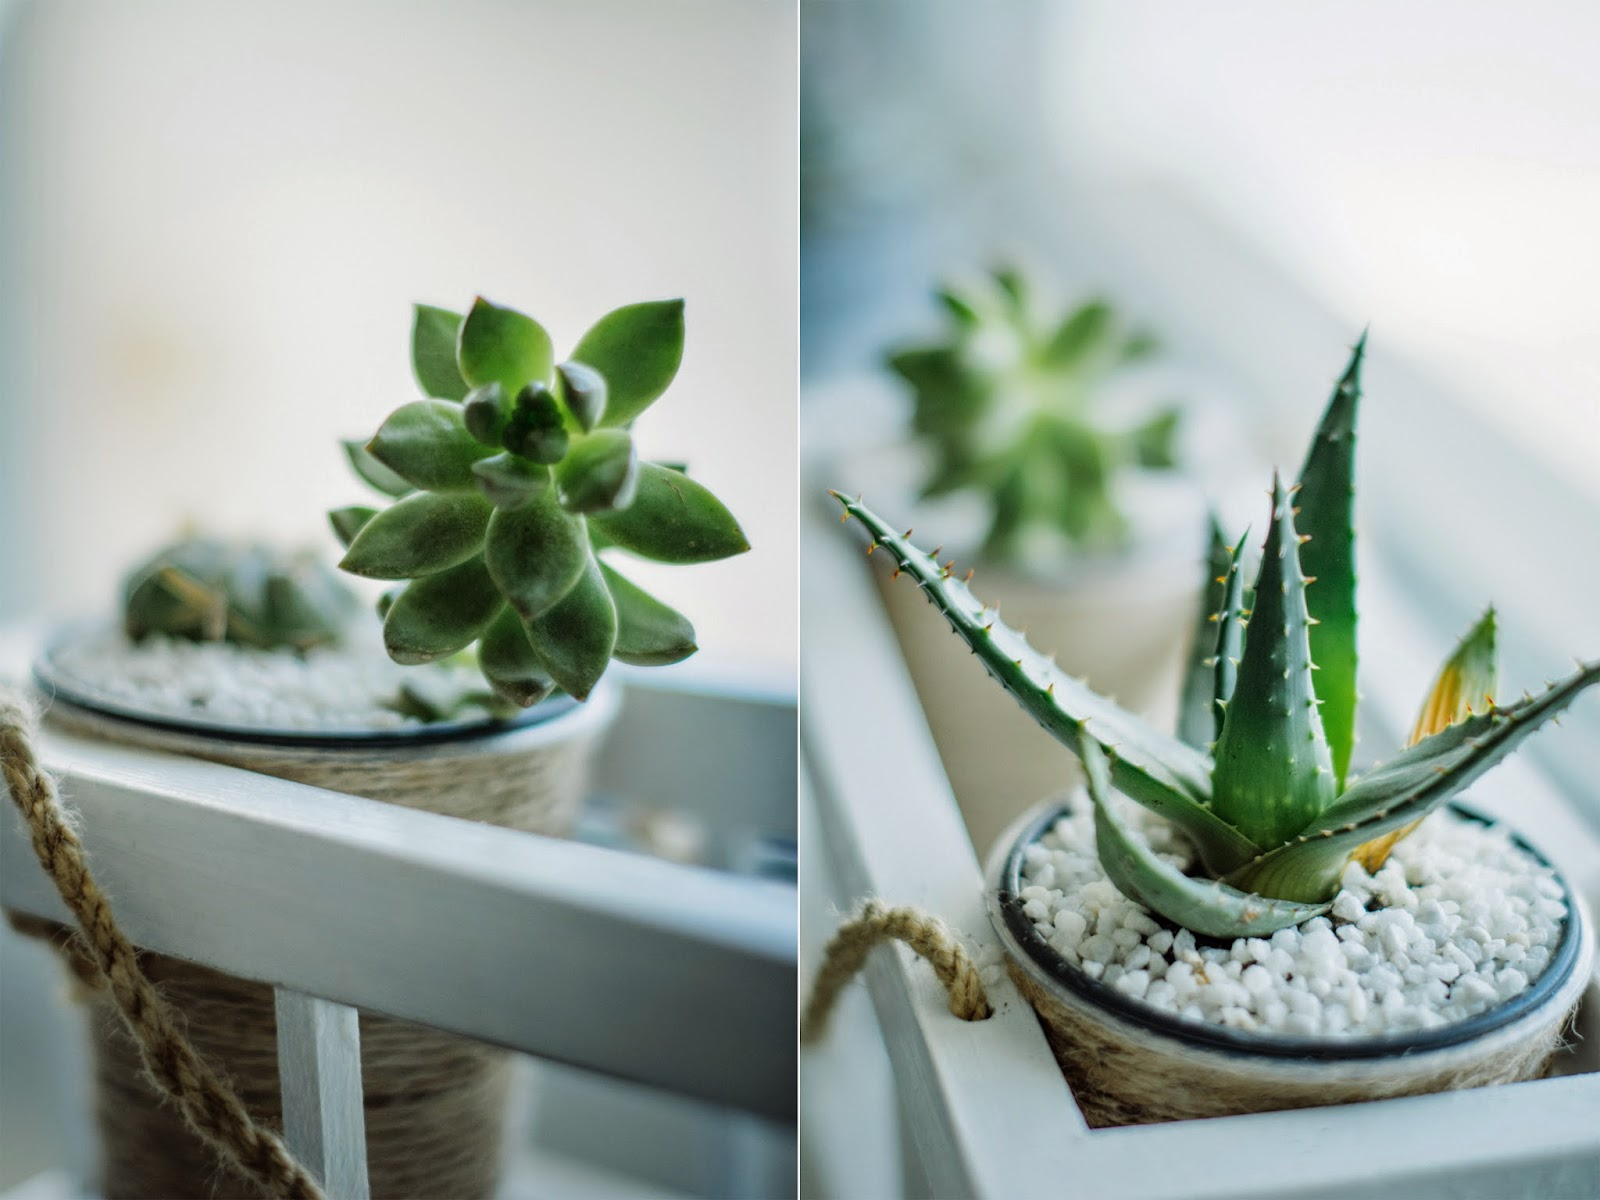 DIY pots and cups for succulent plants, diy lesson of home decor